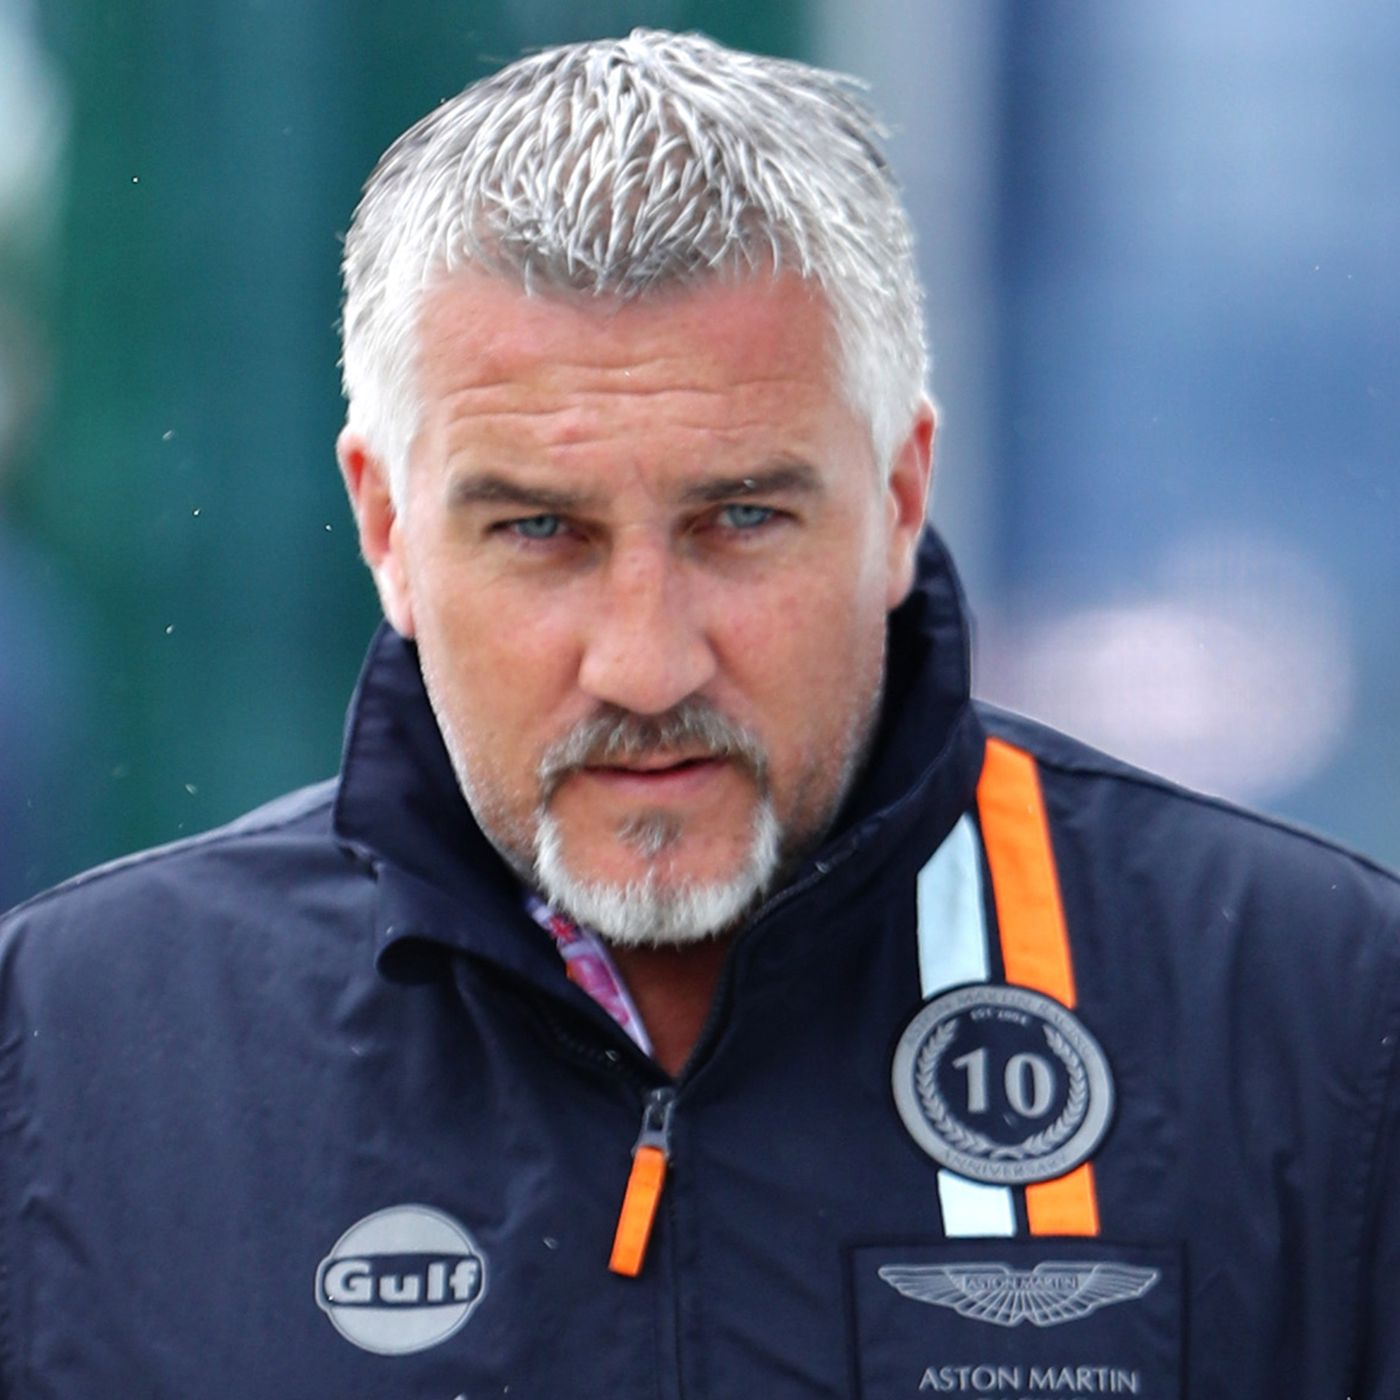 Paul Hollywood Wore a Nazi Uniform to a Costume Party in